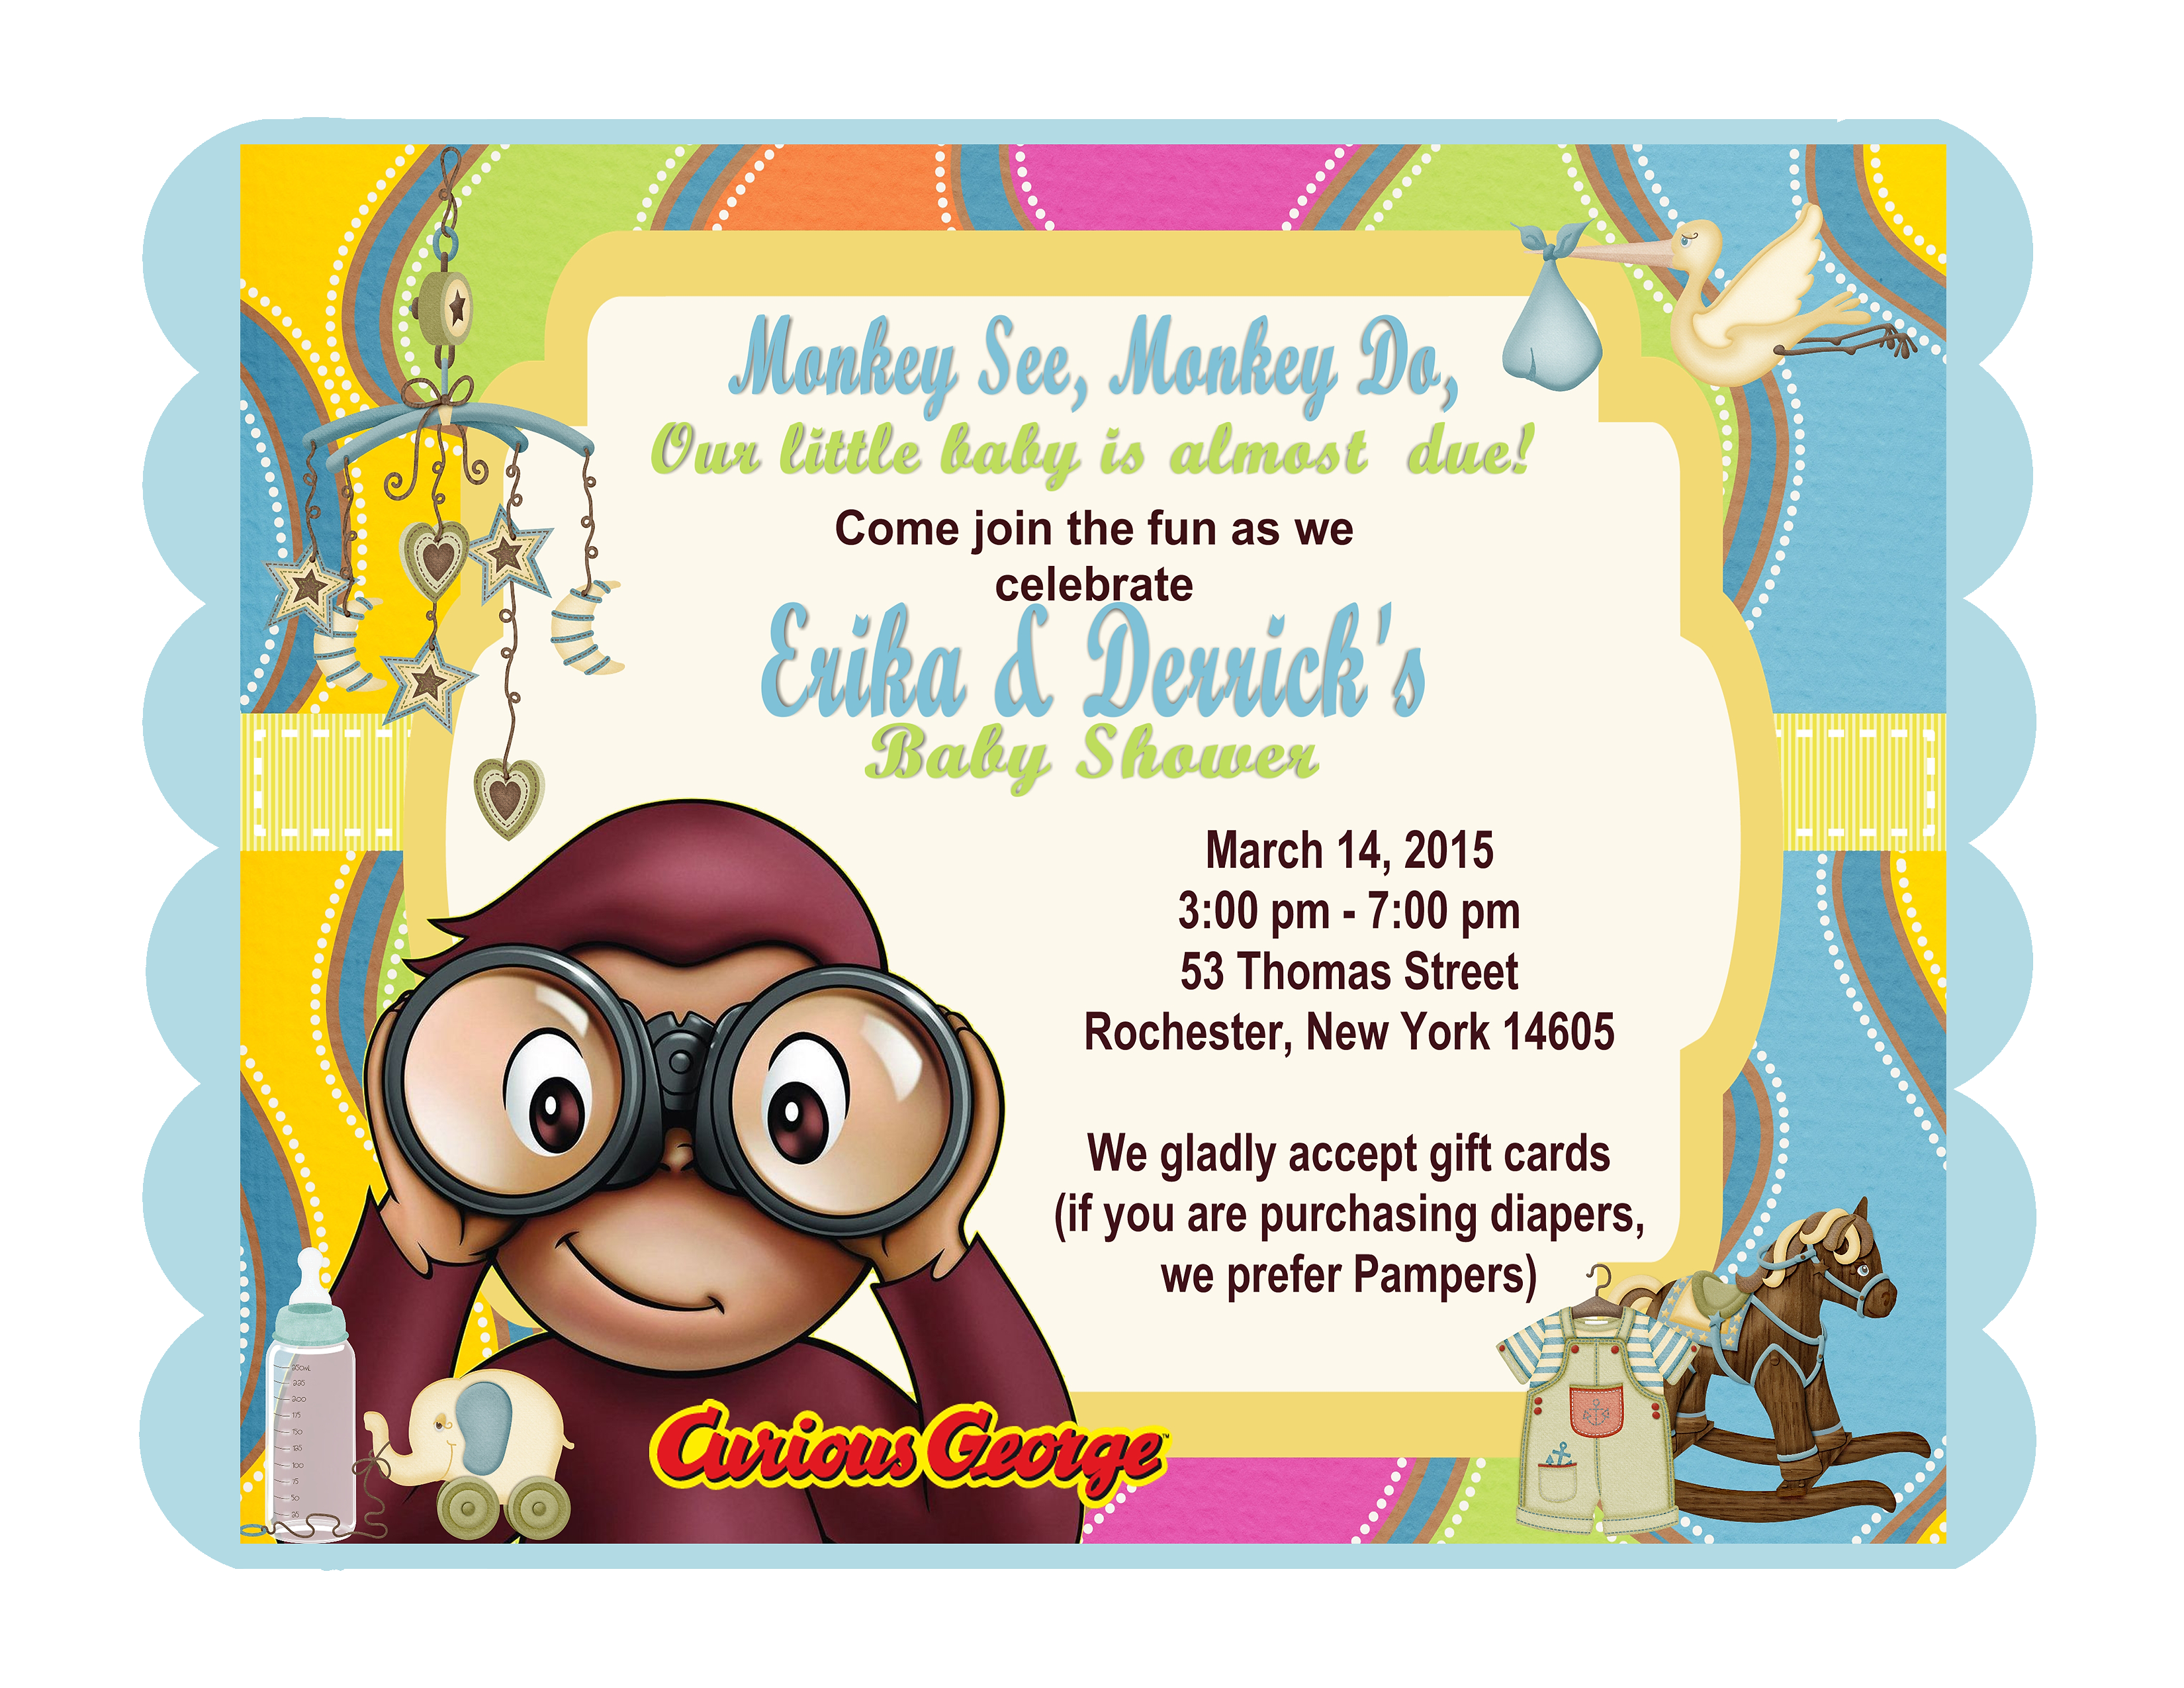 Unique invitations by cherylcherylsinvitationsmoreno valley curious george keepsake baby shower bottles card invitations filmwisefo Image collections